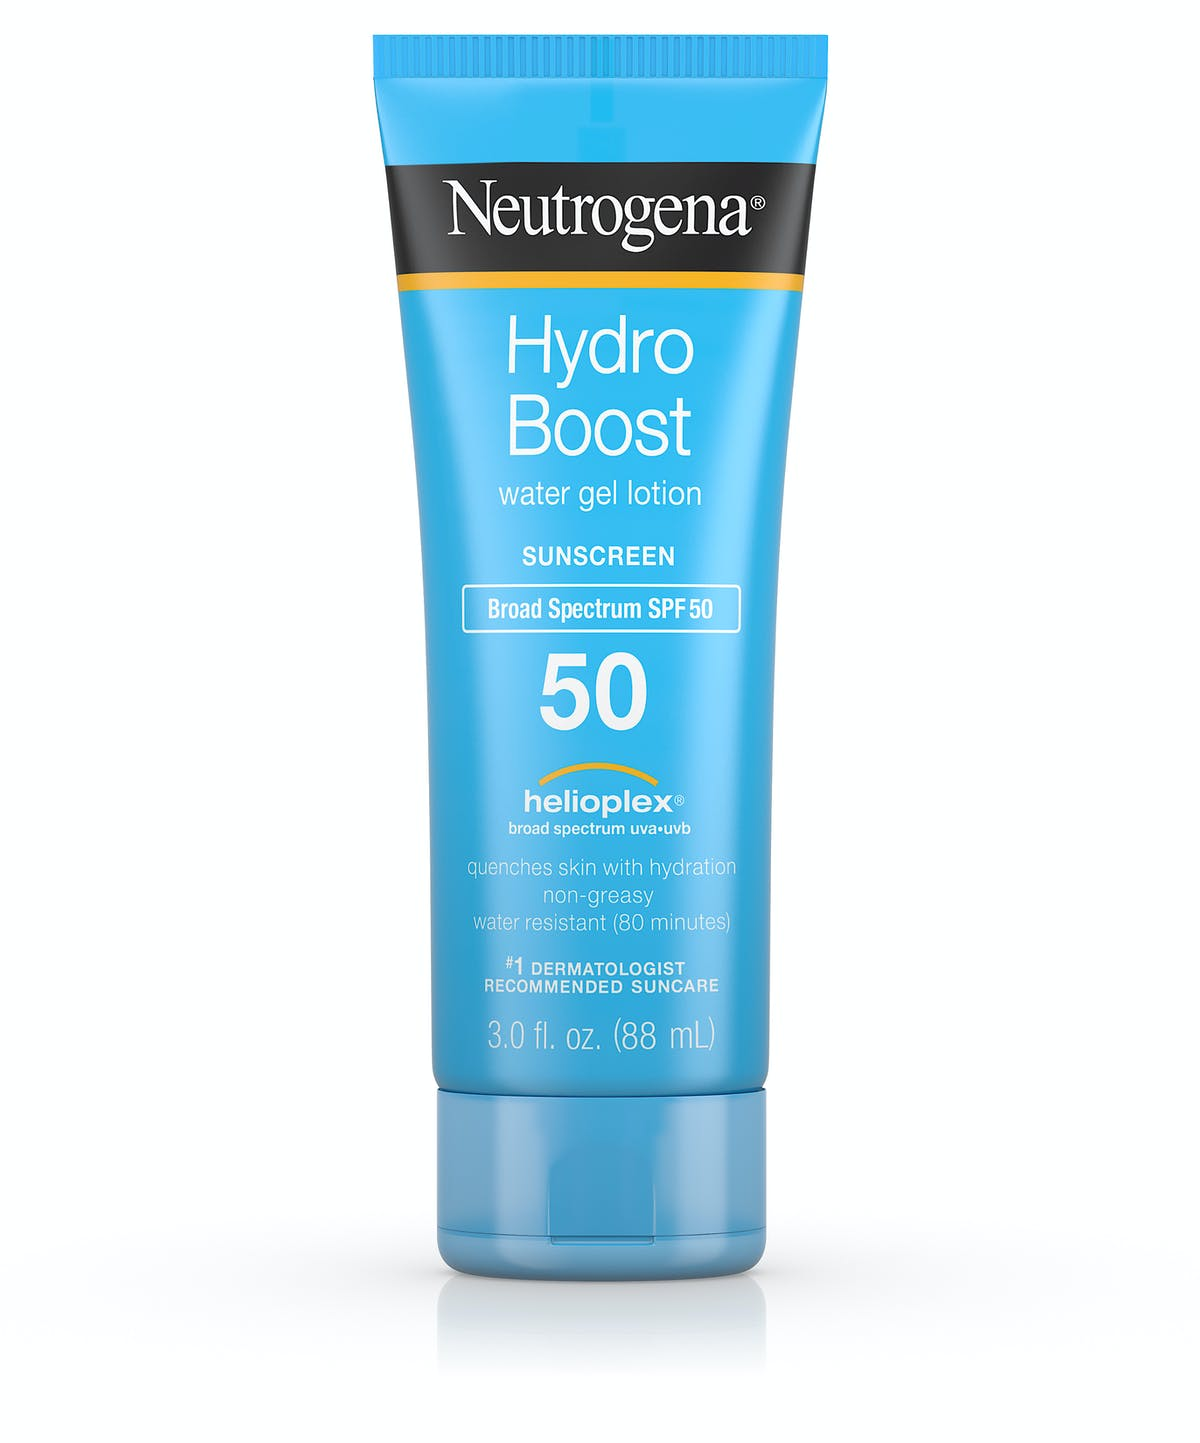 ebda76465 Hydro Boost Water Gel Sunscreen Lotion | NEUTROGENA®